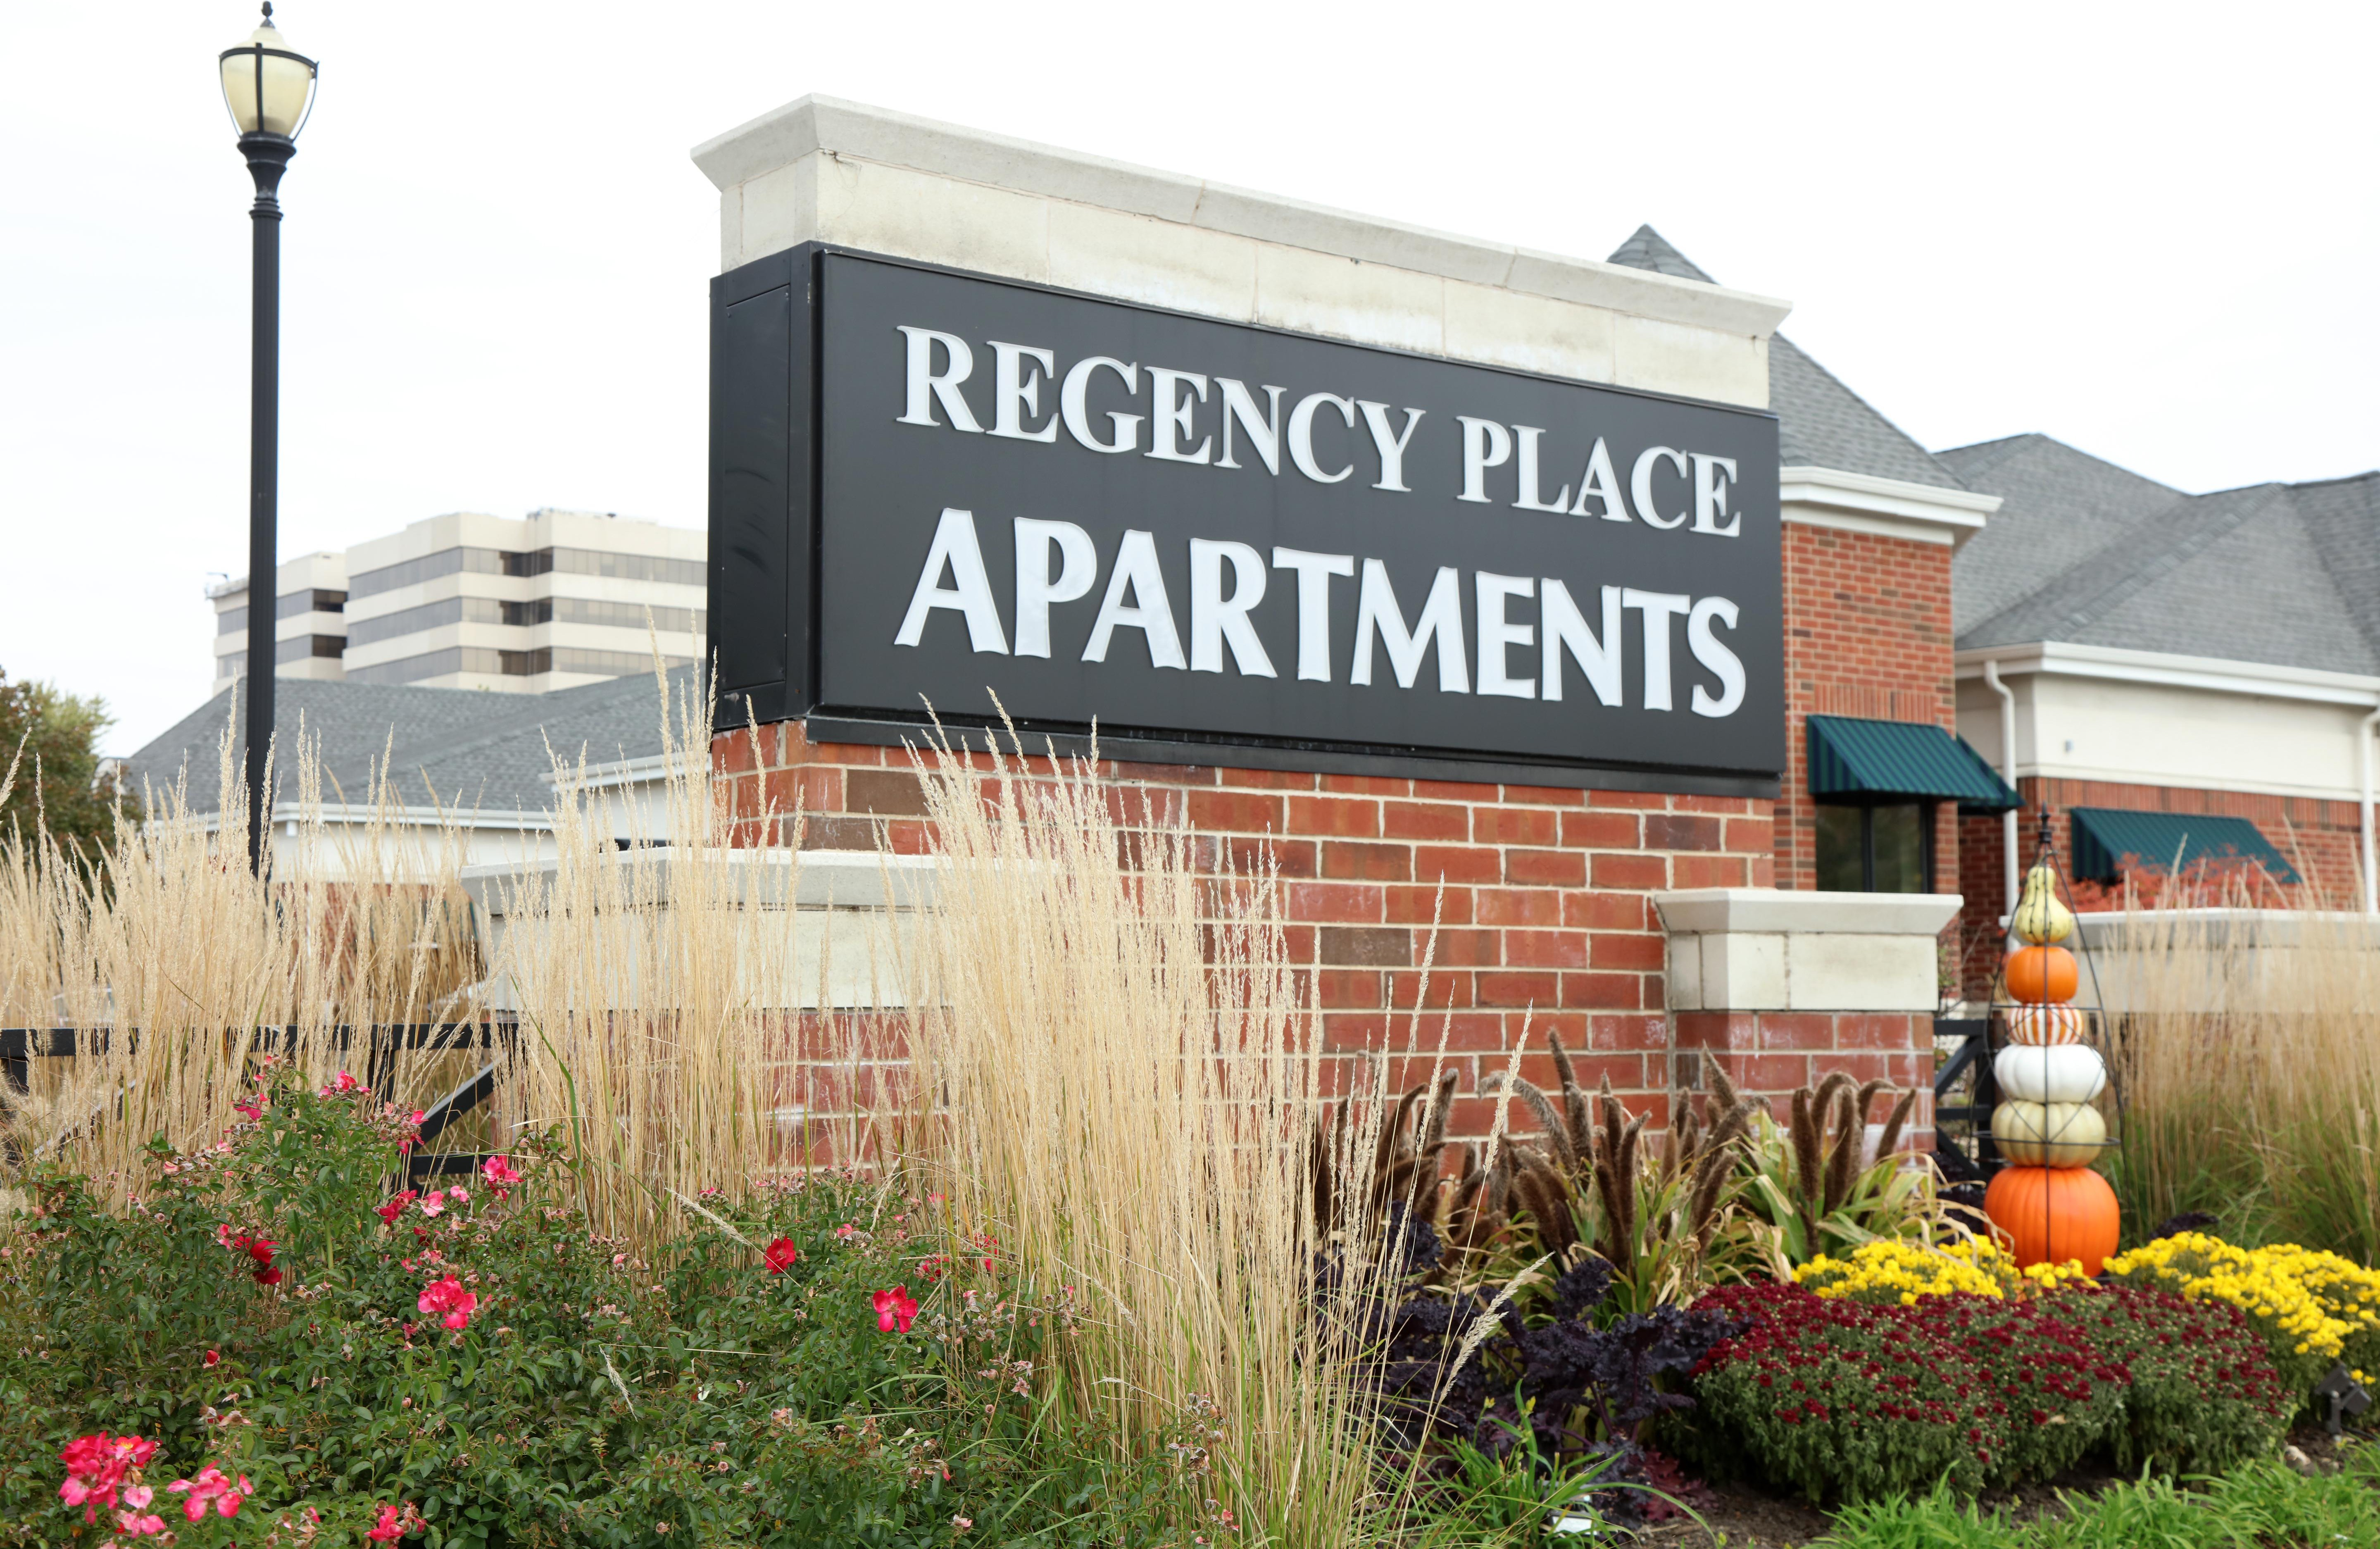 Apartments Near MWU Regency Place for Midwestern University Students in Downers Grove, IL